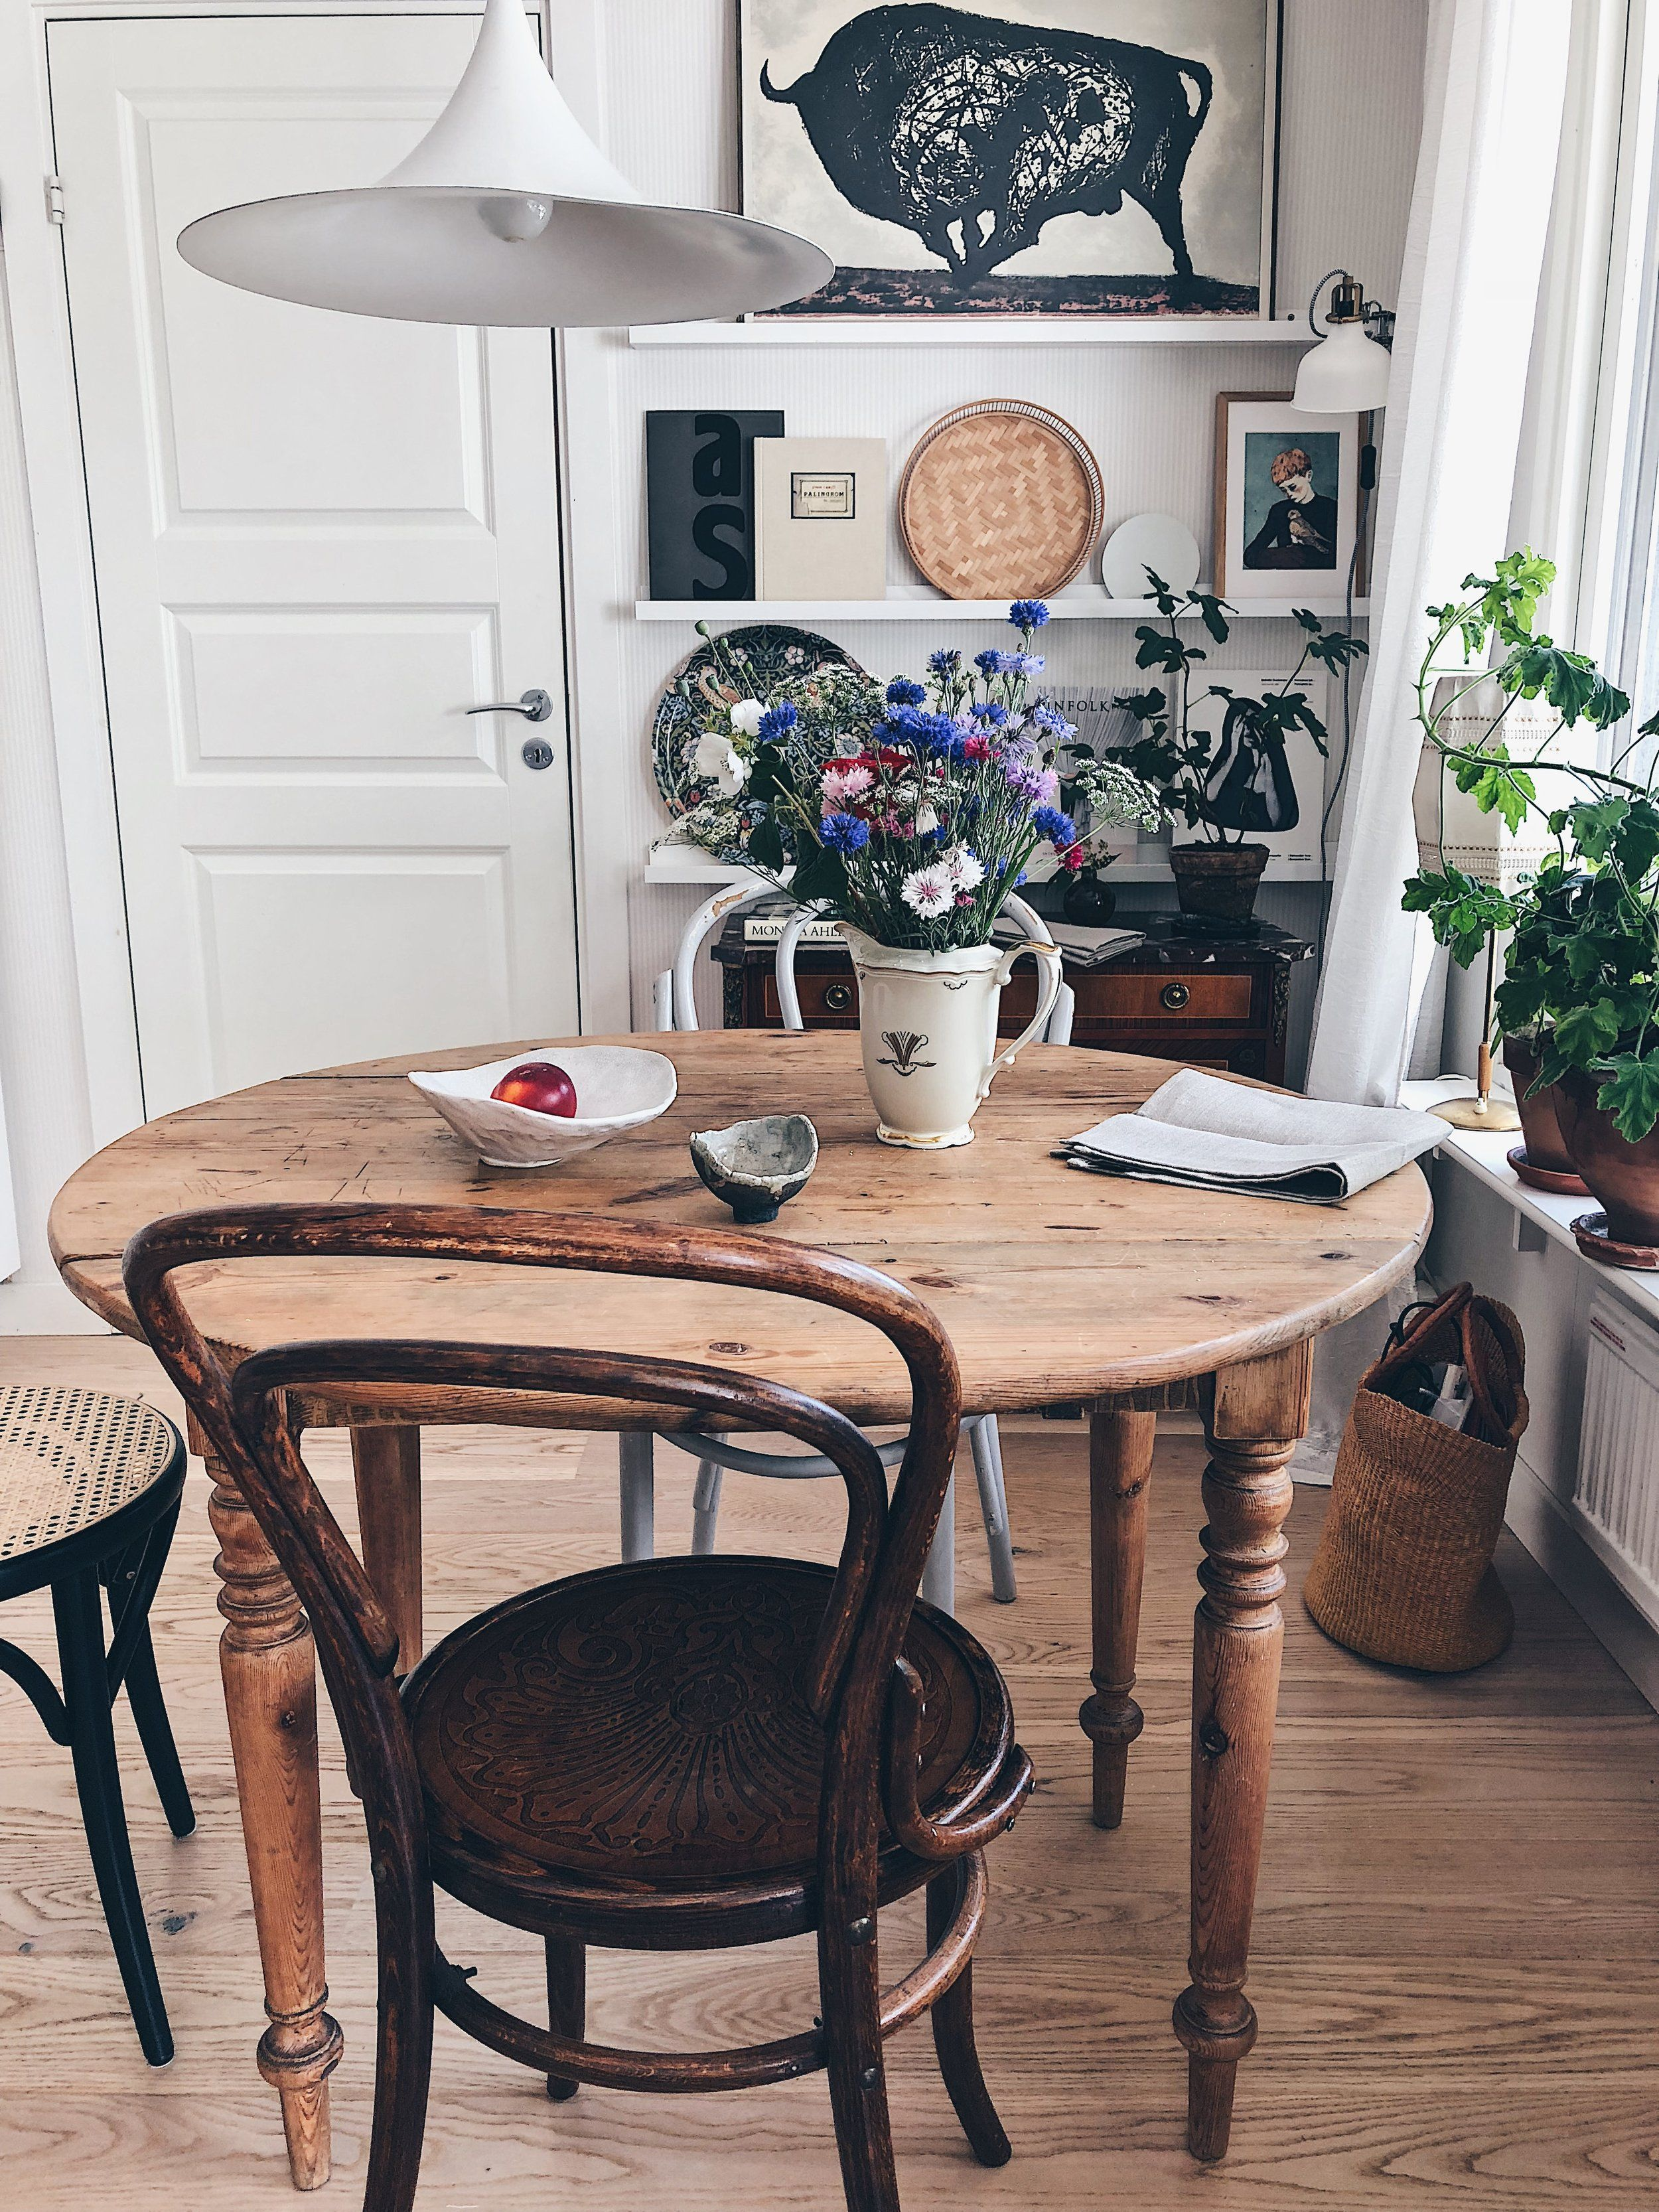 At Home With Camilla Larsson Nordique Nordic Lifestyle Scandinavian Design Nordic Products Scandinavian Travel Dining Room Design Dining Room Decor Interior